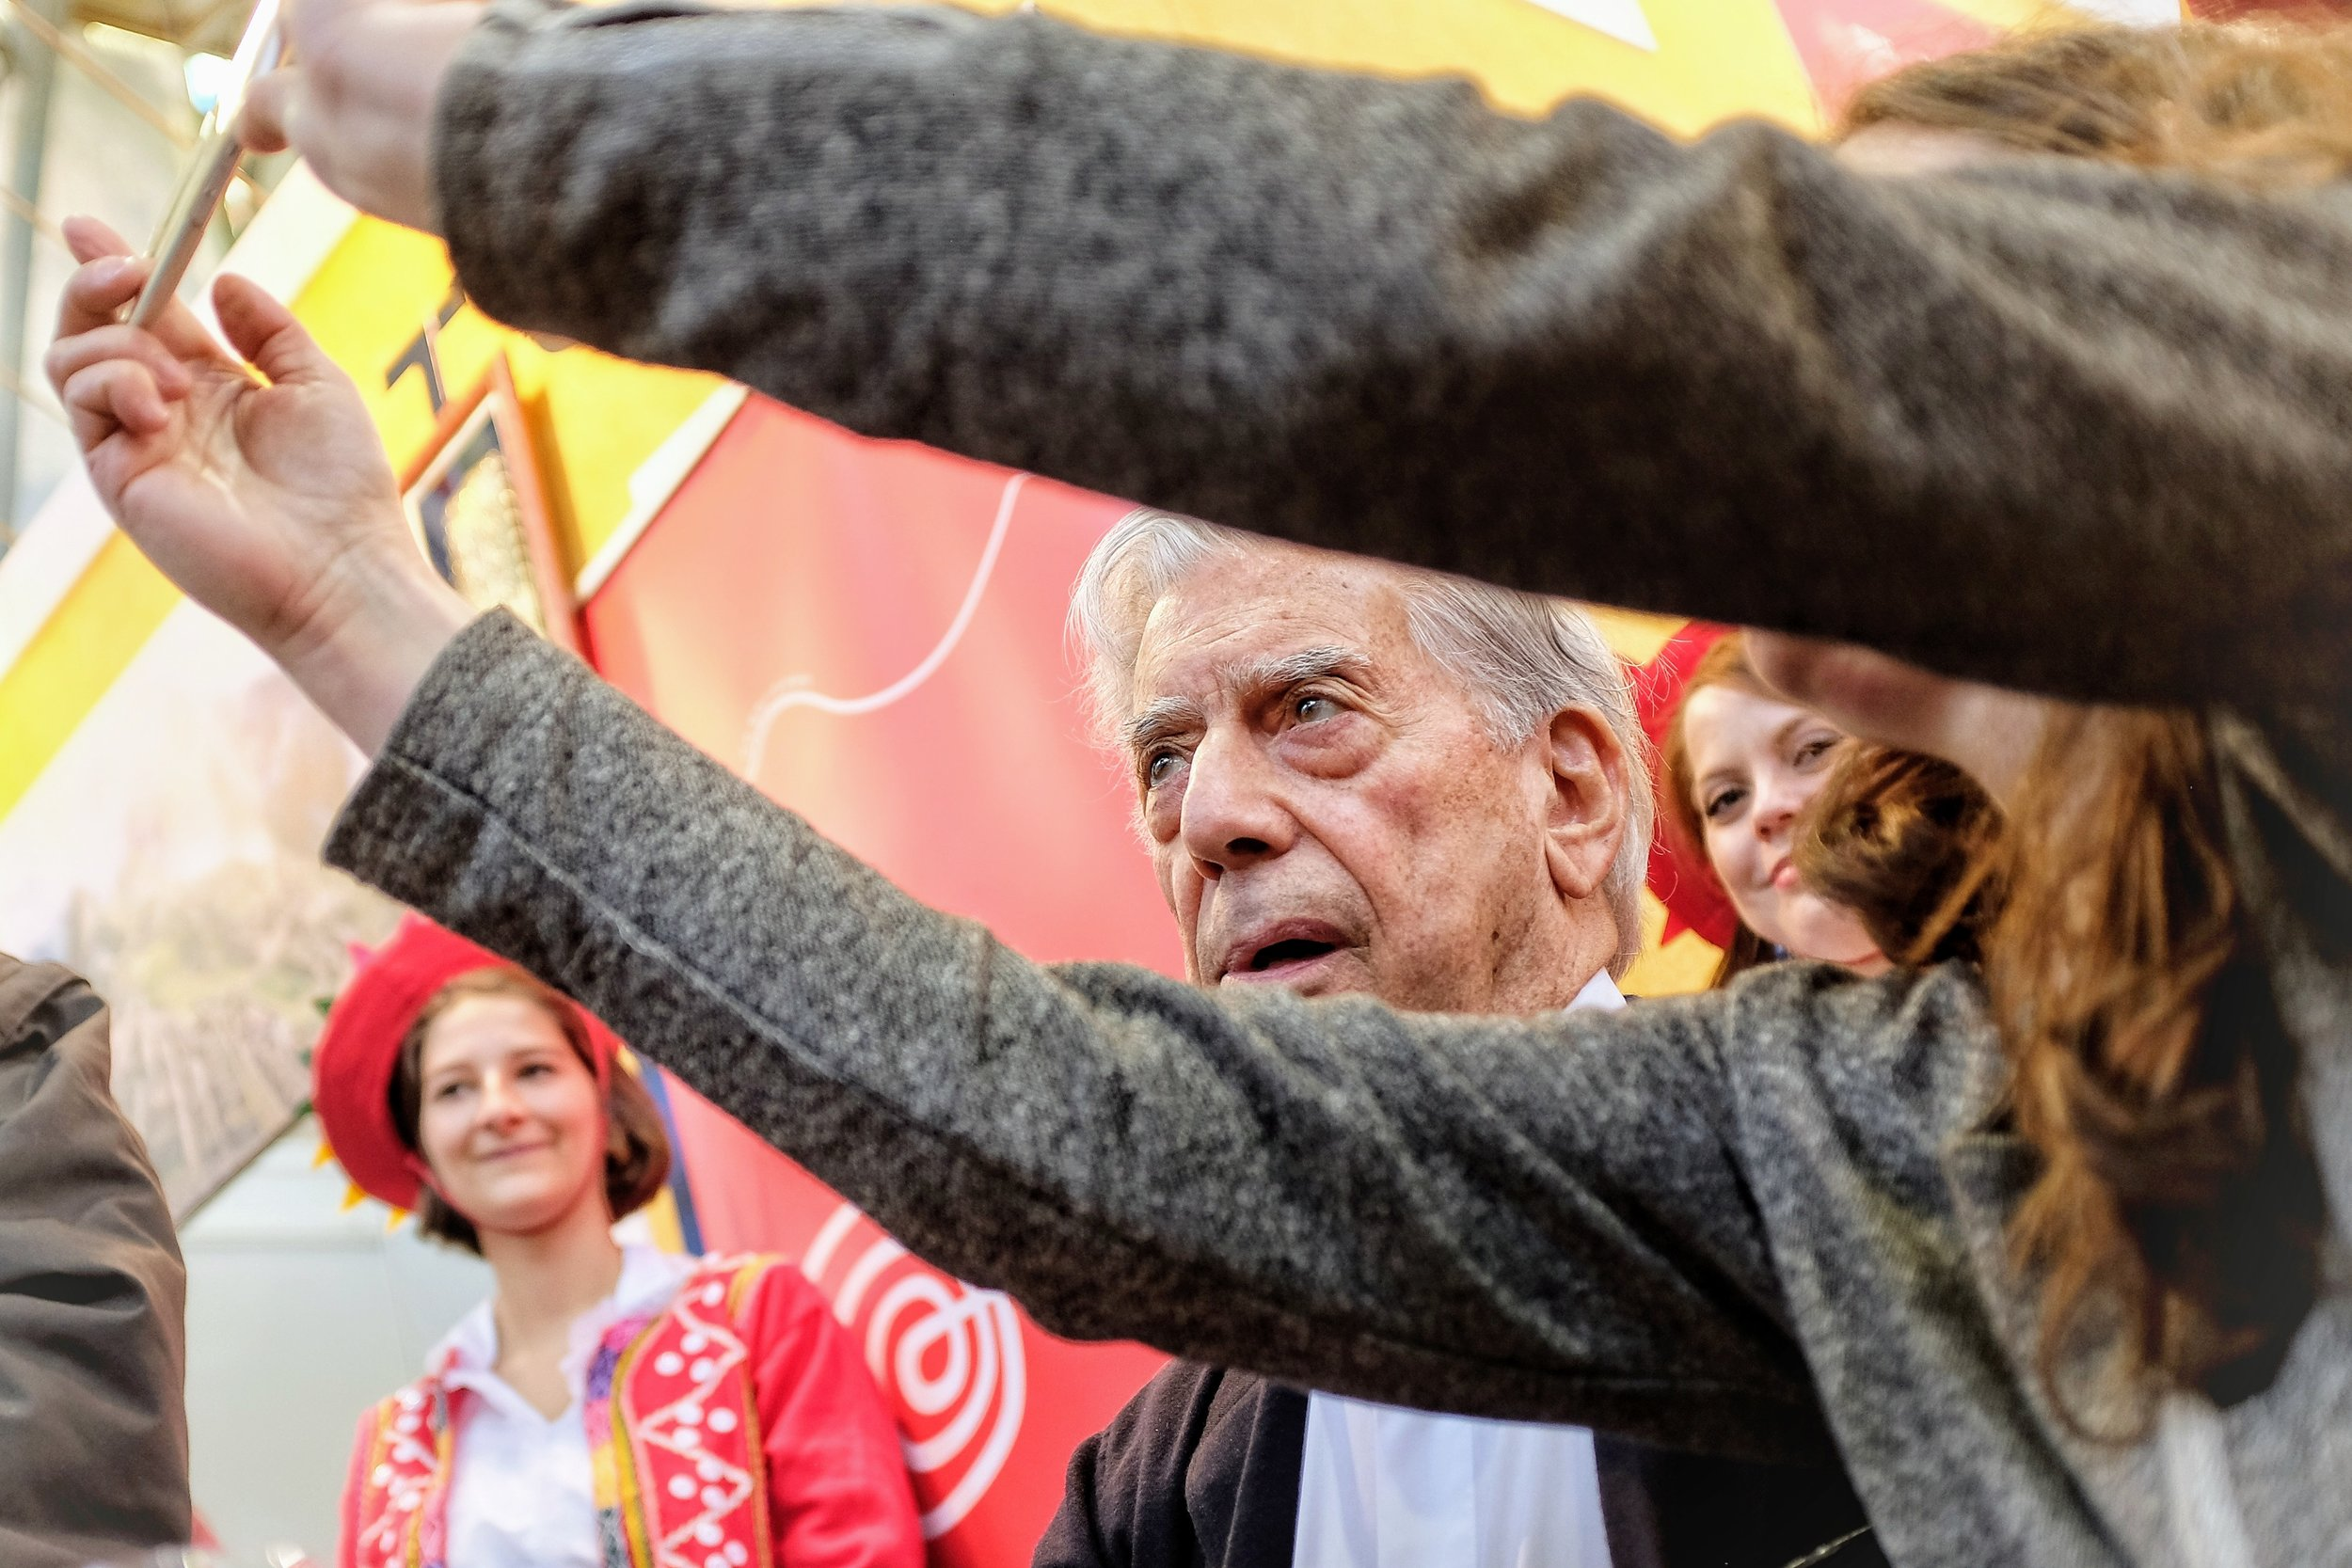 Mario Vargas Llosa poses for a selfie with a Czech reader